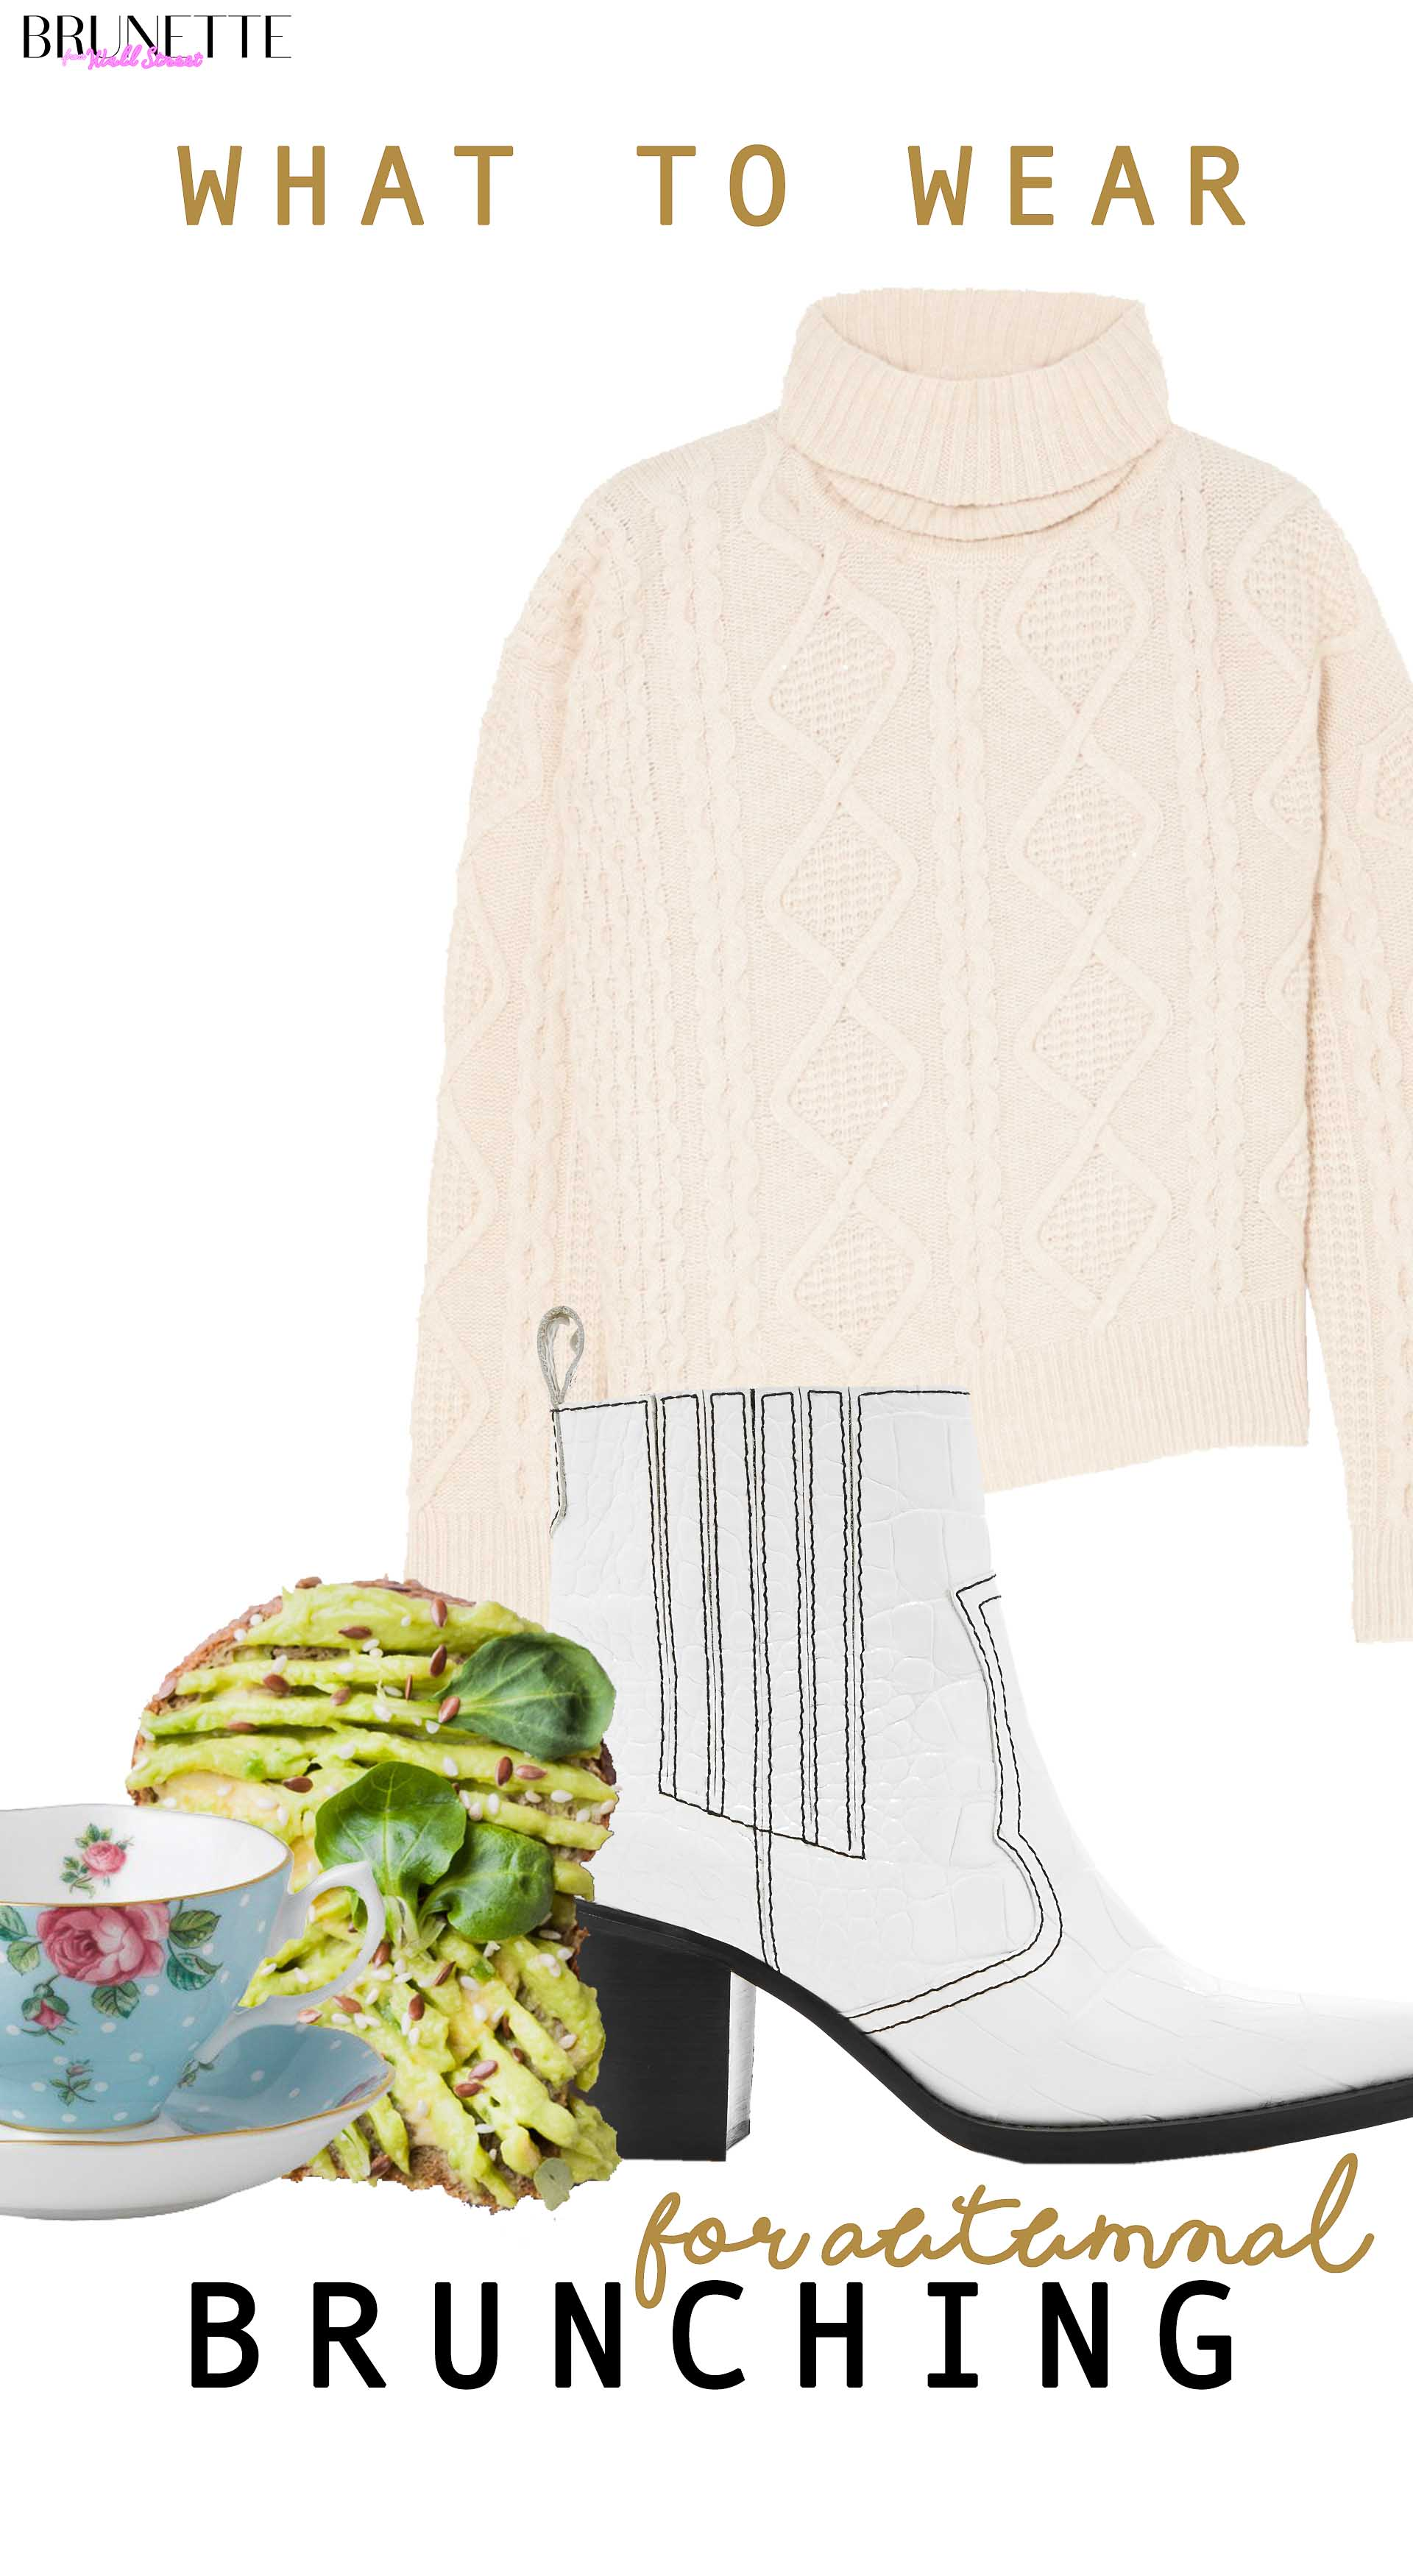 avocado toast, polka dot teacup, turtleneck sweater, white Ganni cowboy boots with text overlay What to wear for autumnal brunching with girl friends